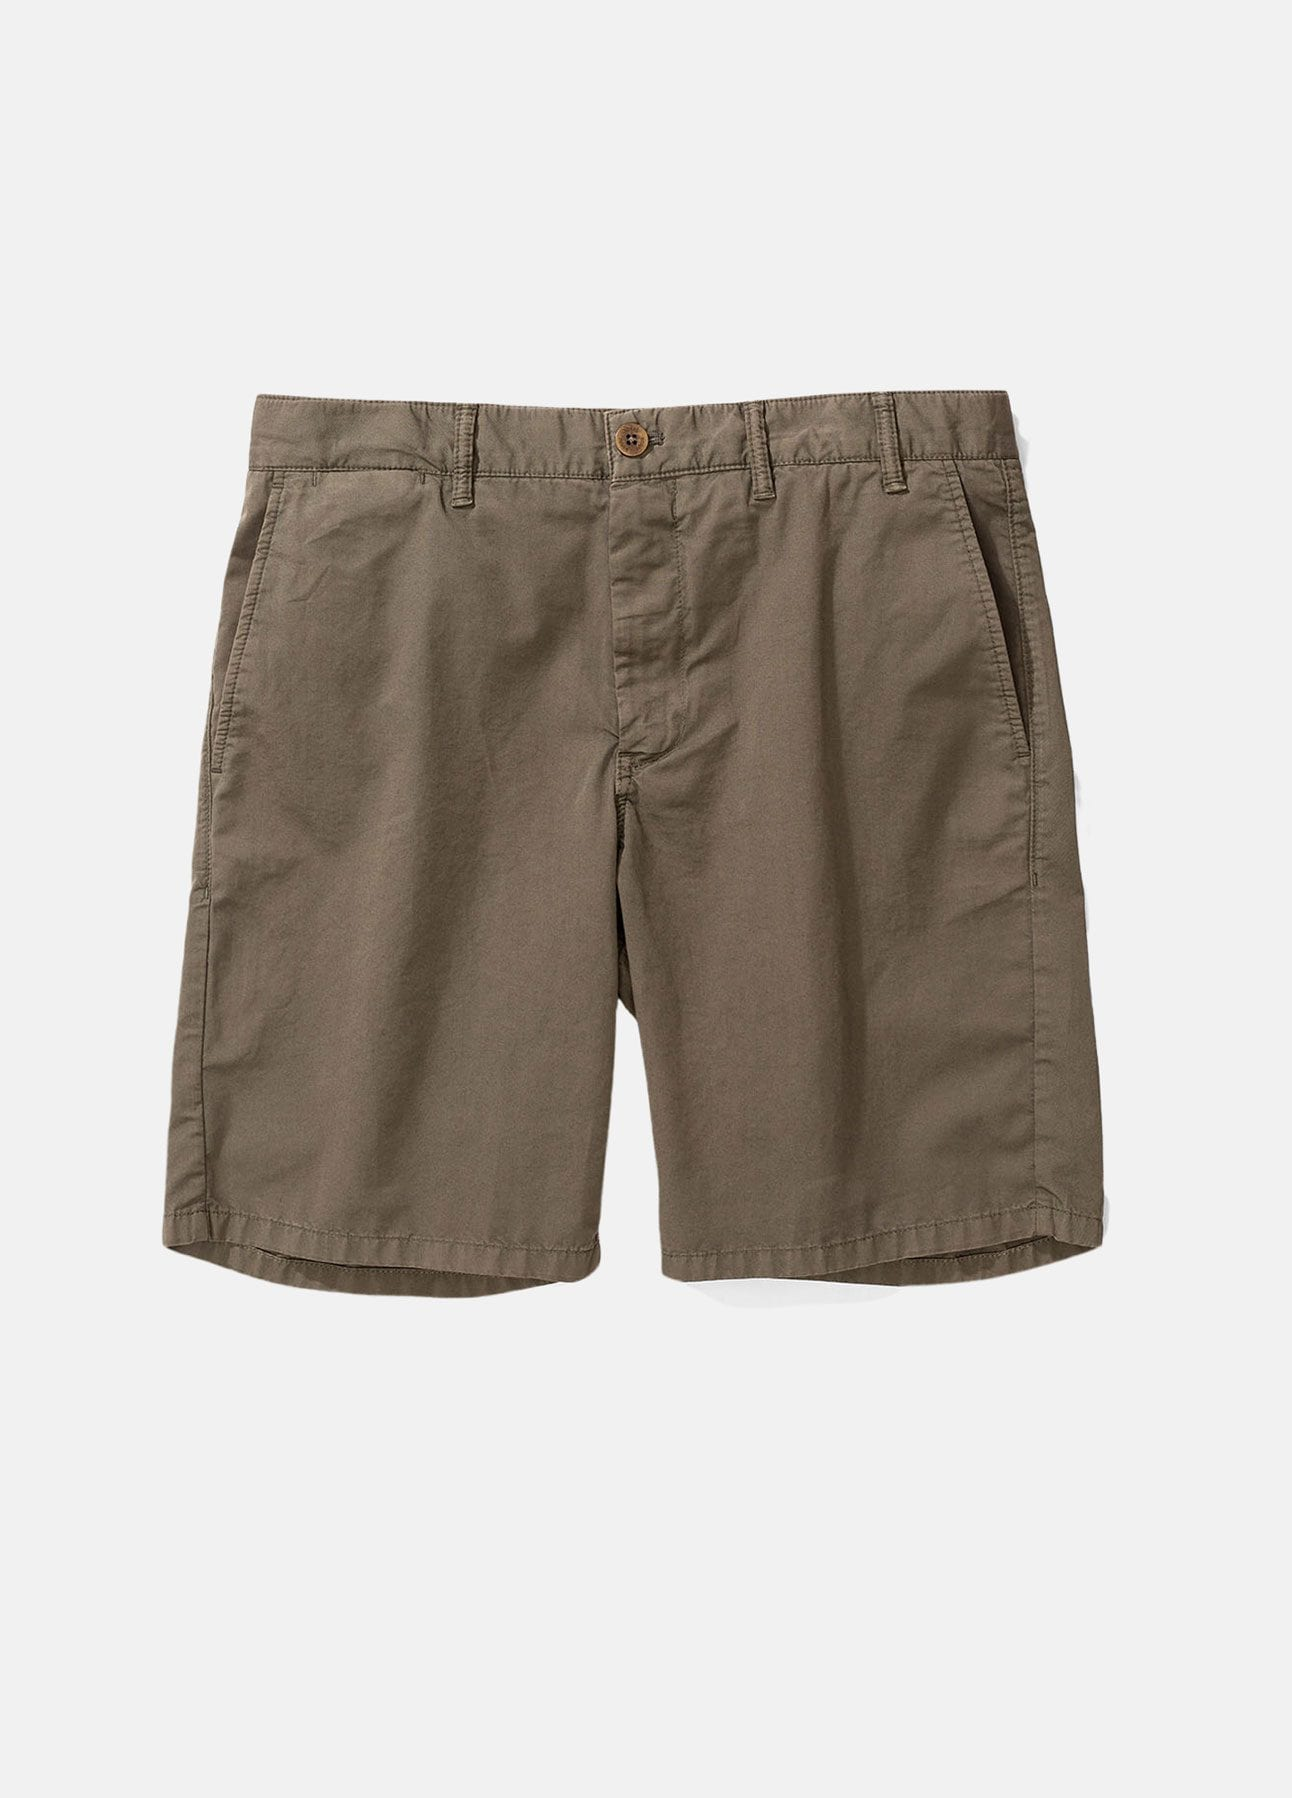 grøn aros light twill shorts fra norse projects